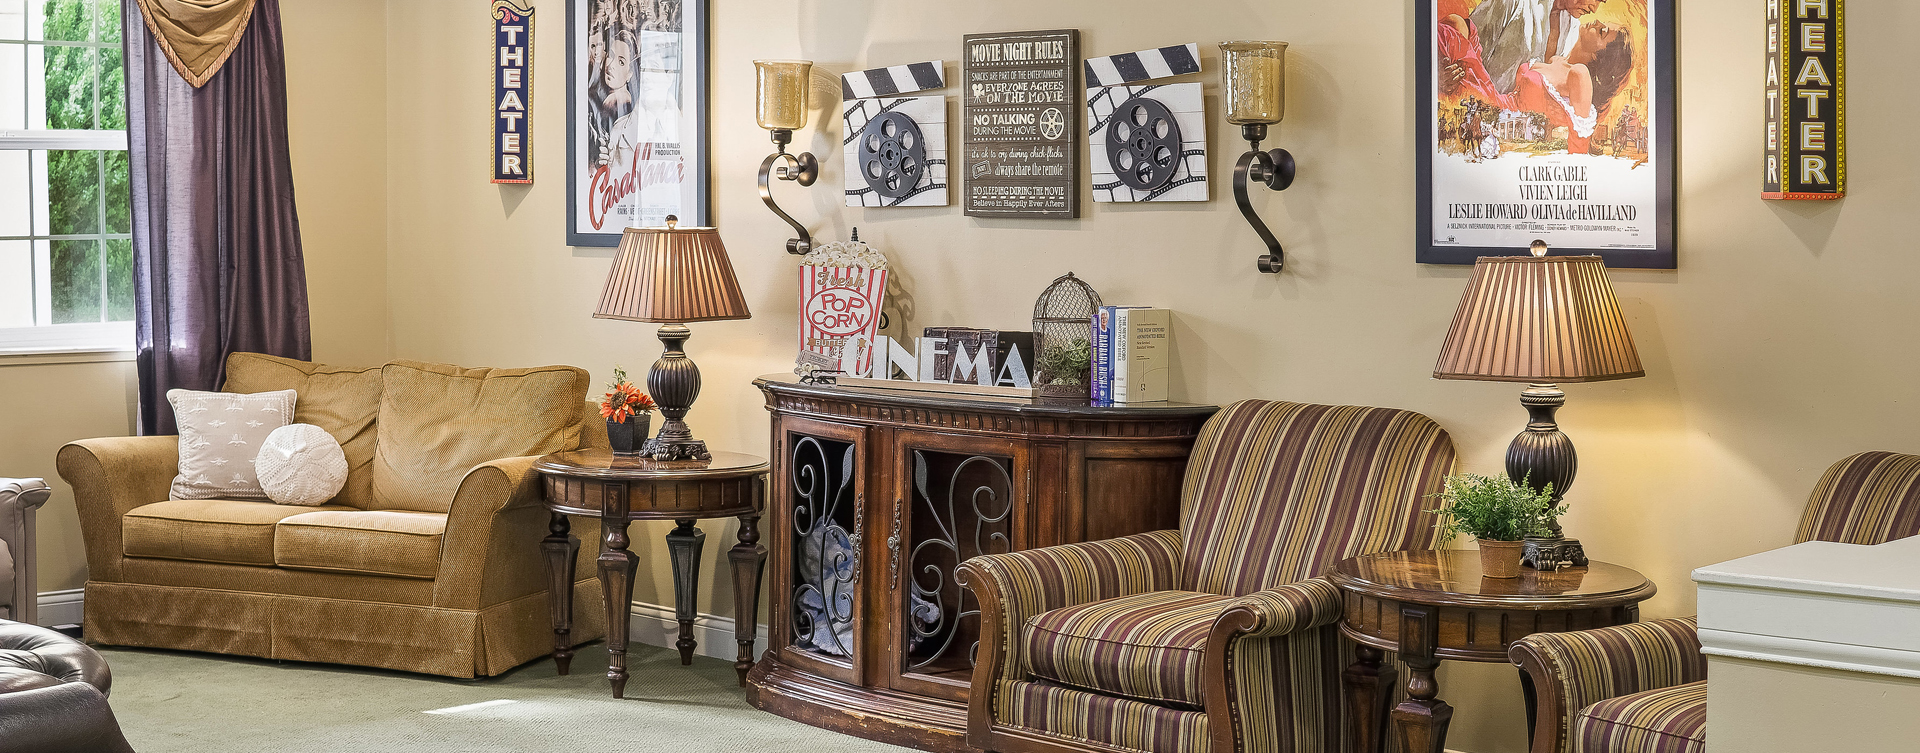 Residents can enjoy furniture covered in cozy fabrics in the Mary B's living room at Bickford of Overland Park